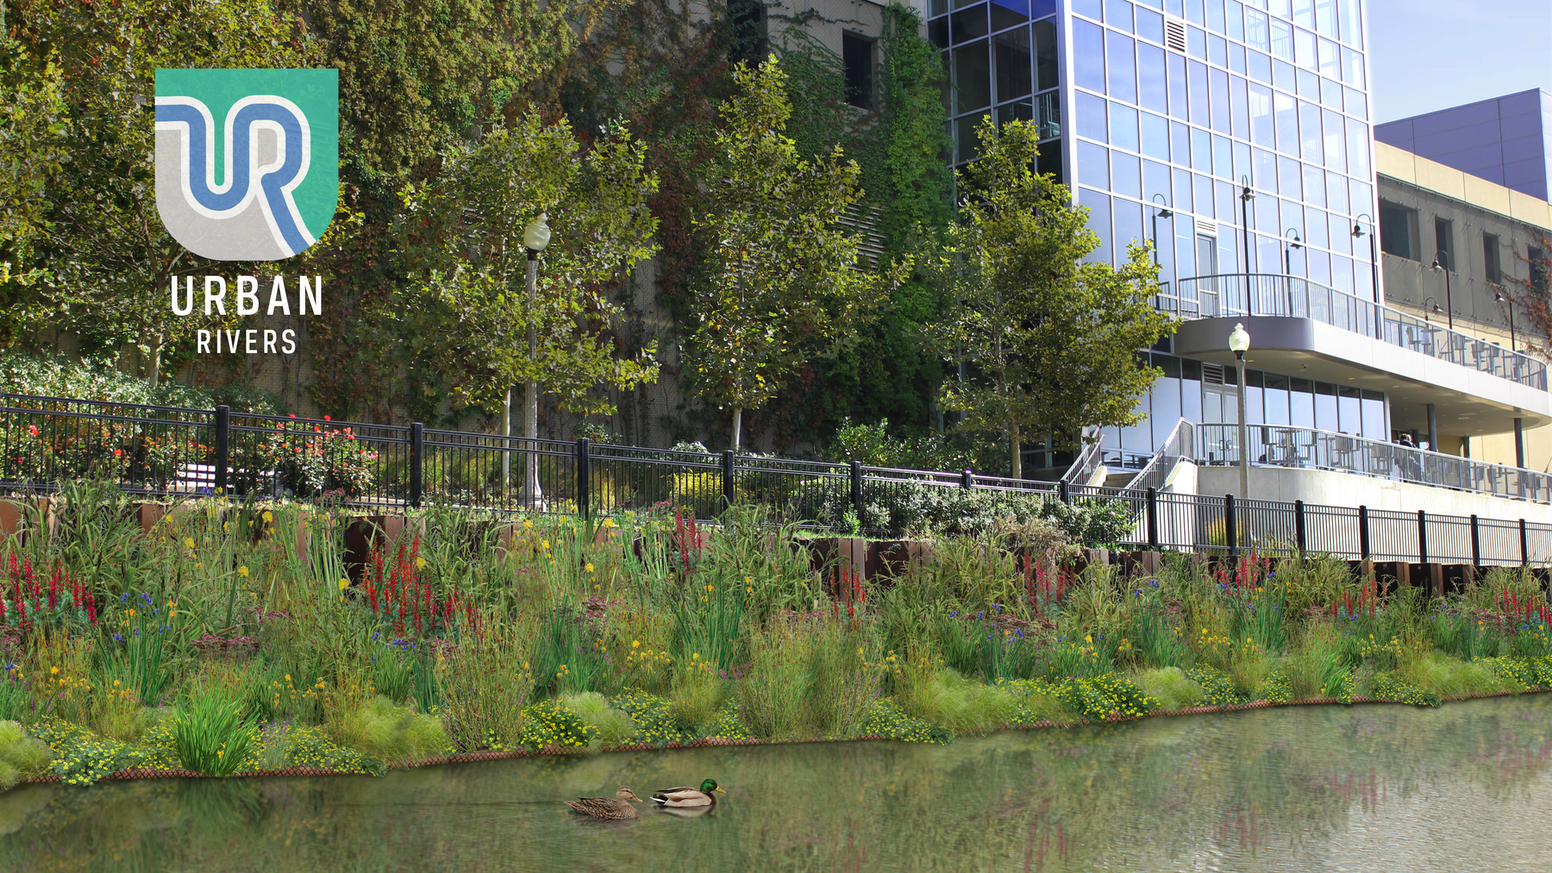 Floating Gardens in the Chicago River by Urban Rivers